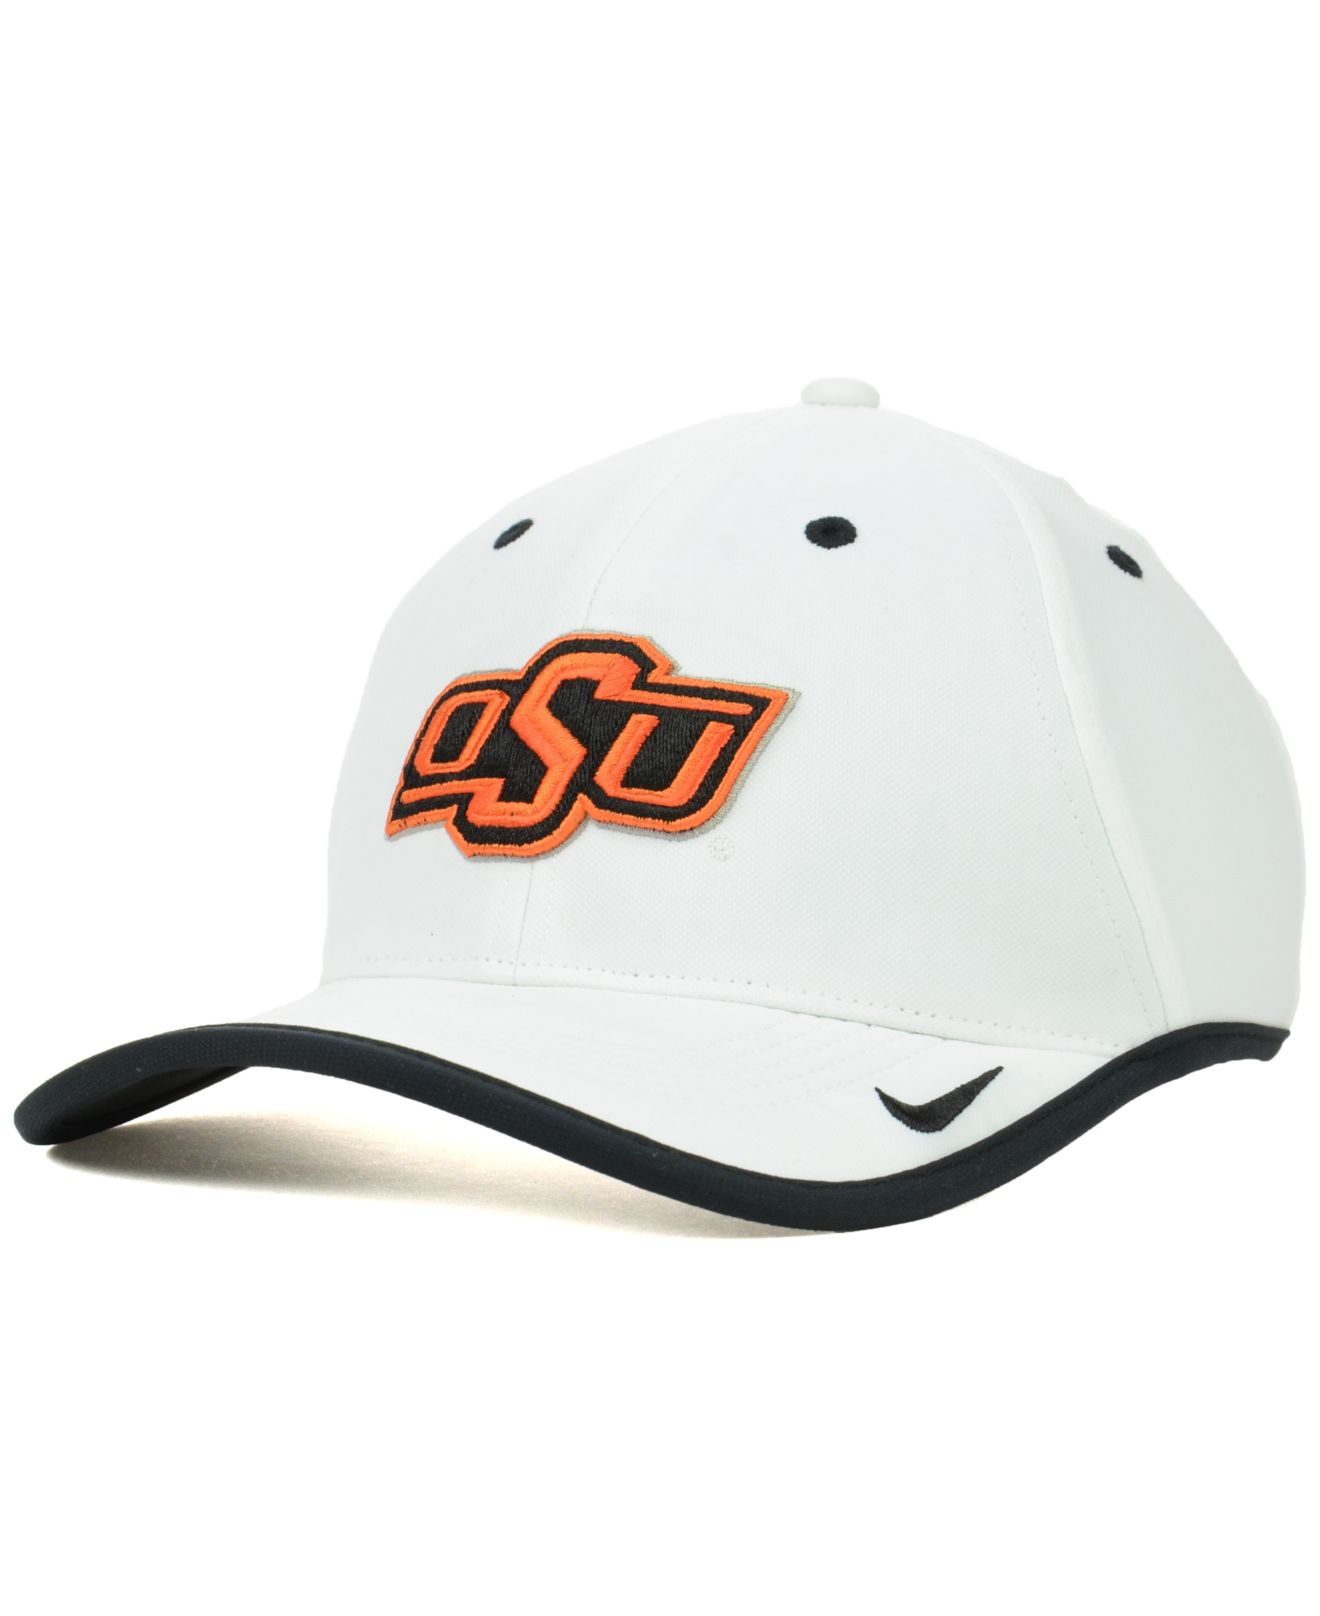 on sale 2a423 46157 Lyst - Nike Oklahoma State Cowboys Ncaa Coaches Cap in White for Men